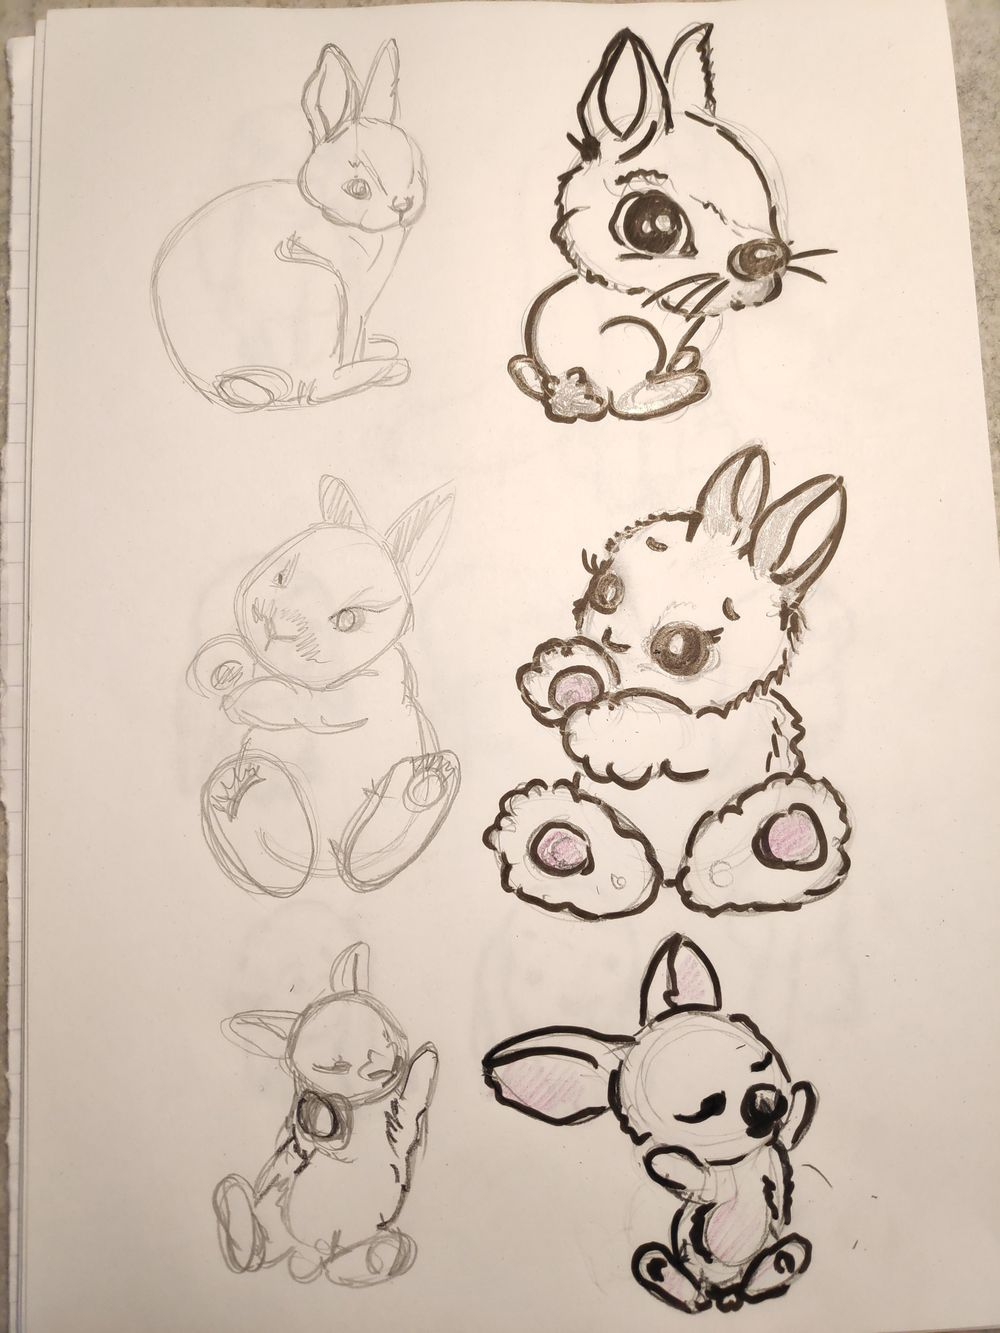 Stylized bunnies - image 1 - student project